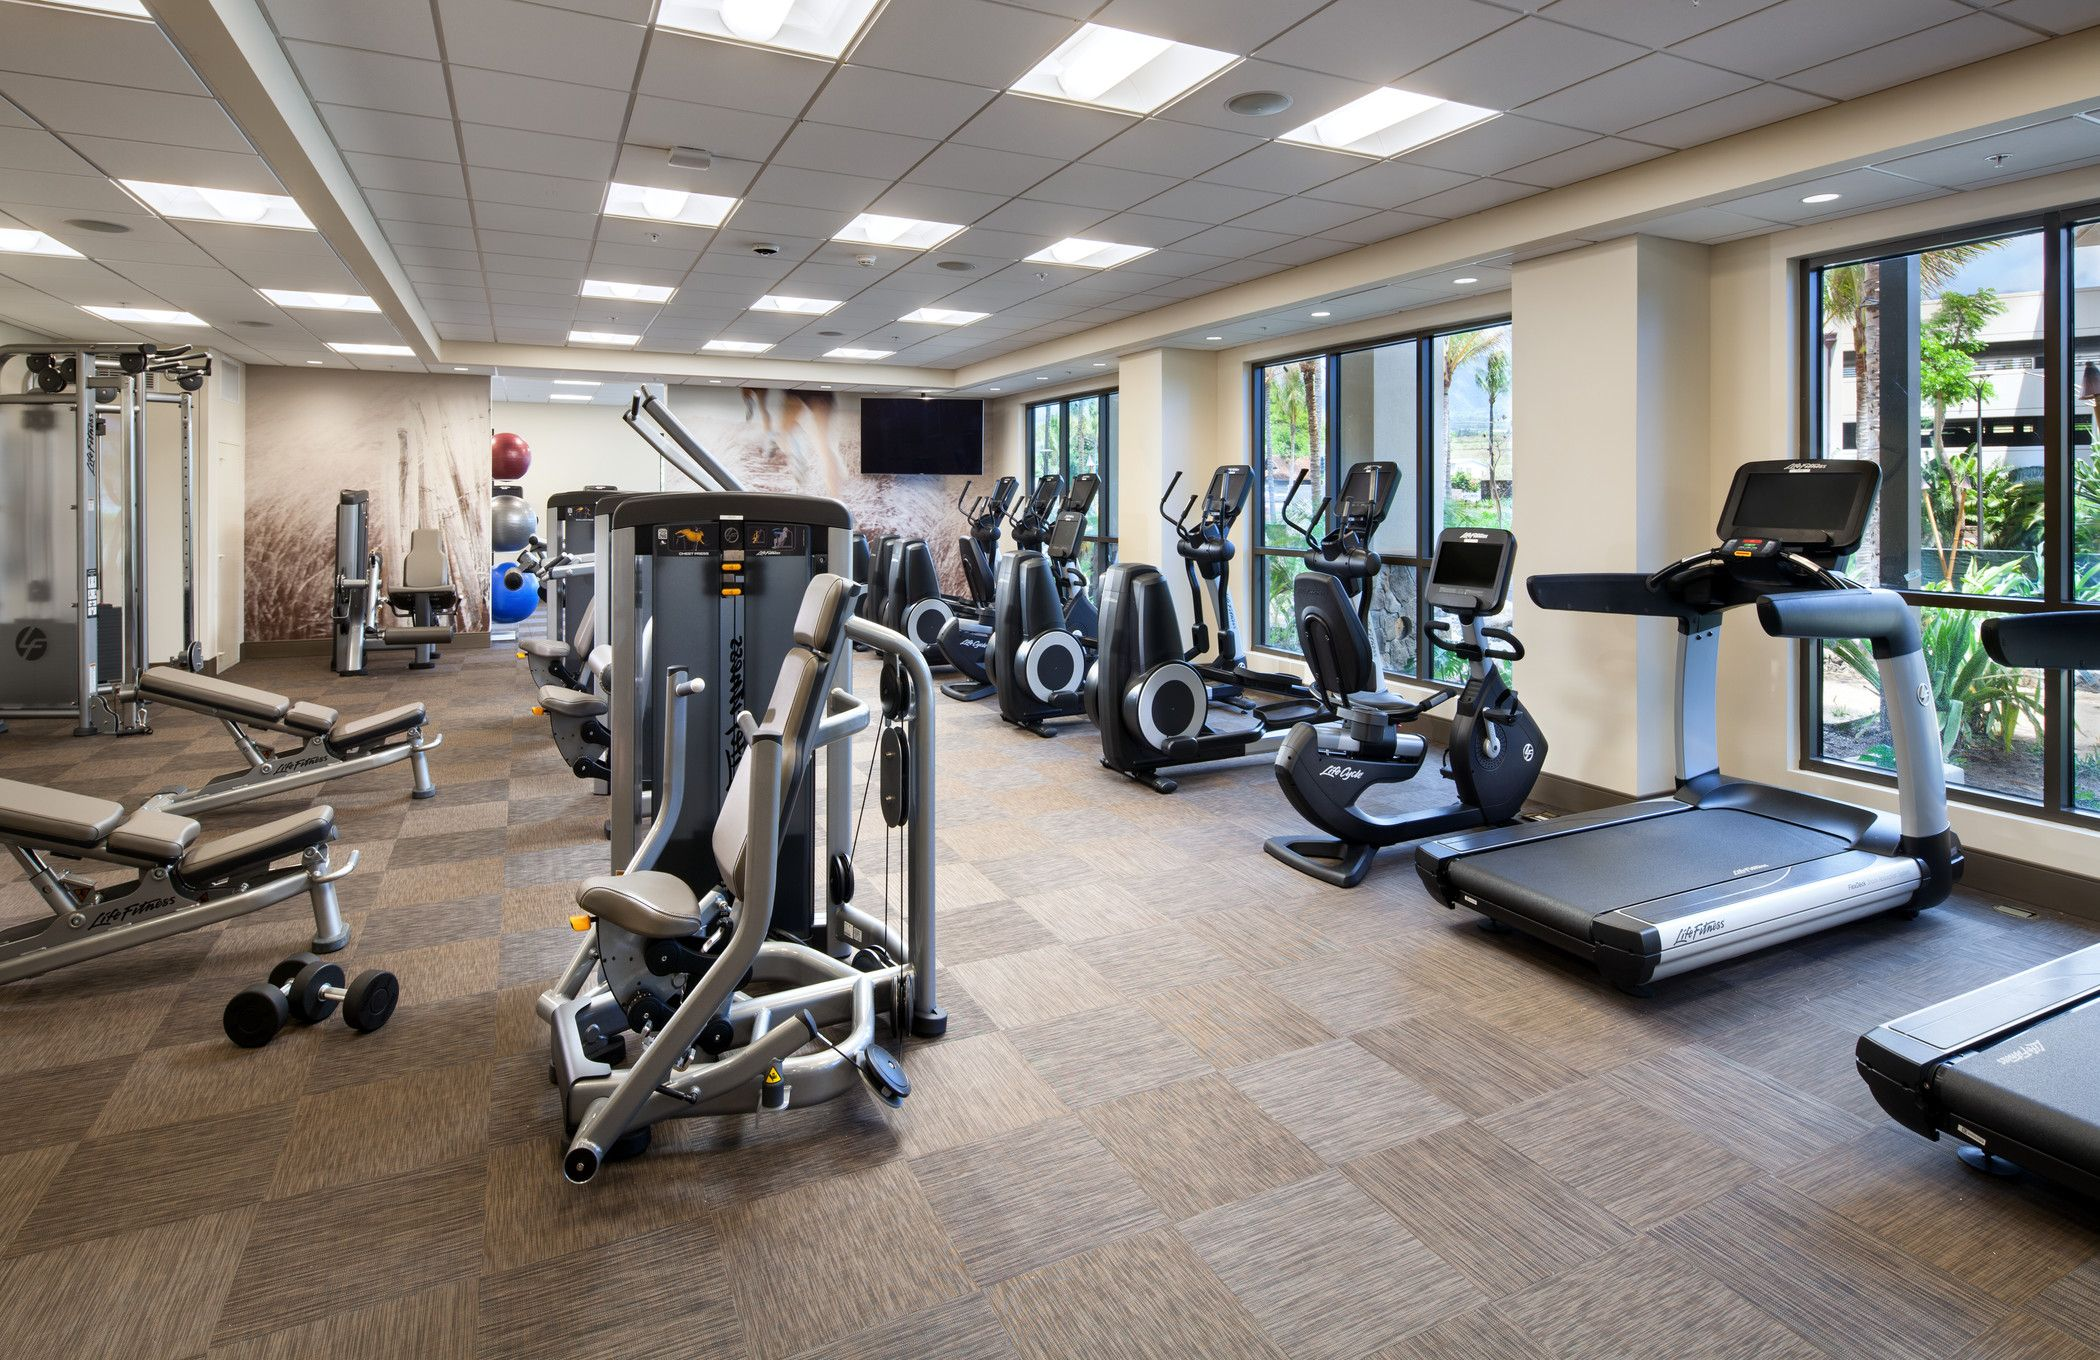 The Westin Nanea Ocean Villas, Ka'anapali - Westin WORKOUT Fitness Studio